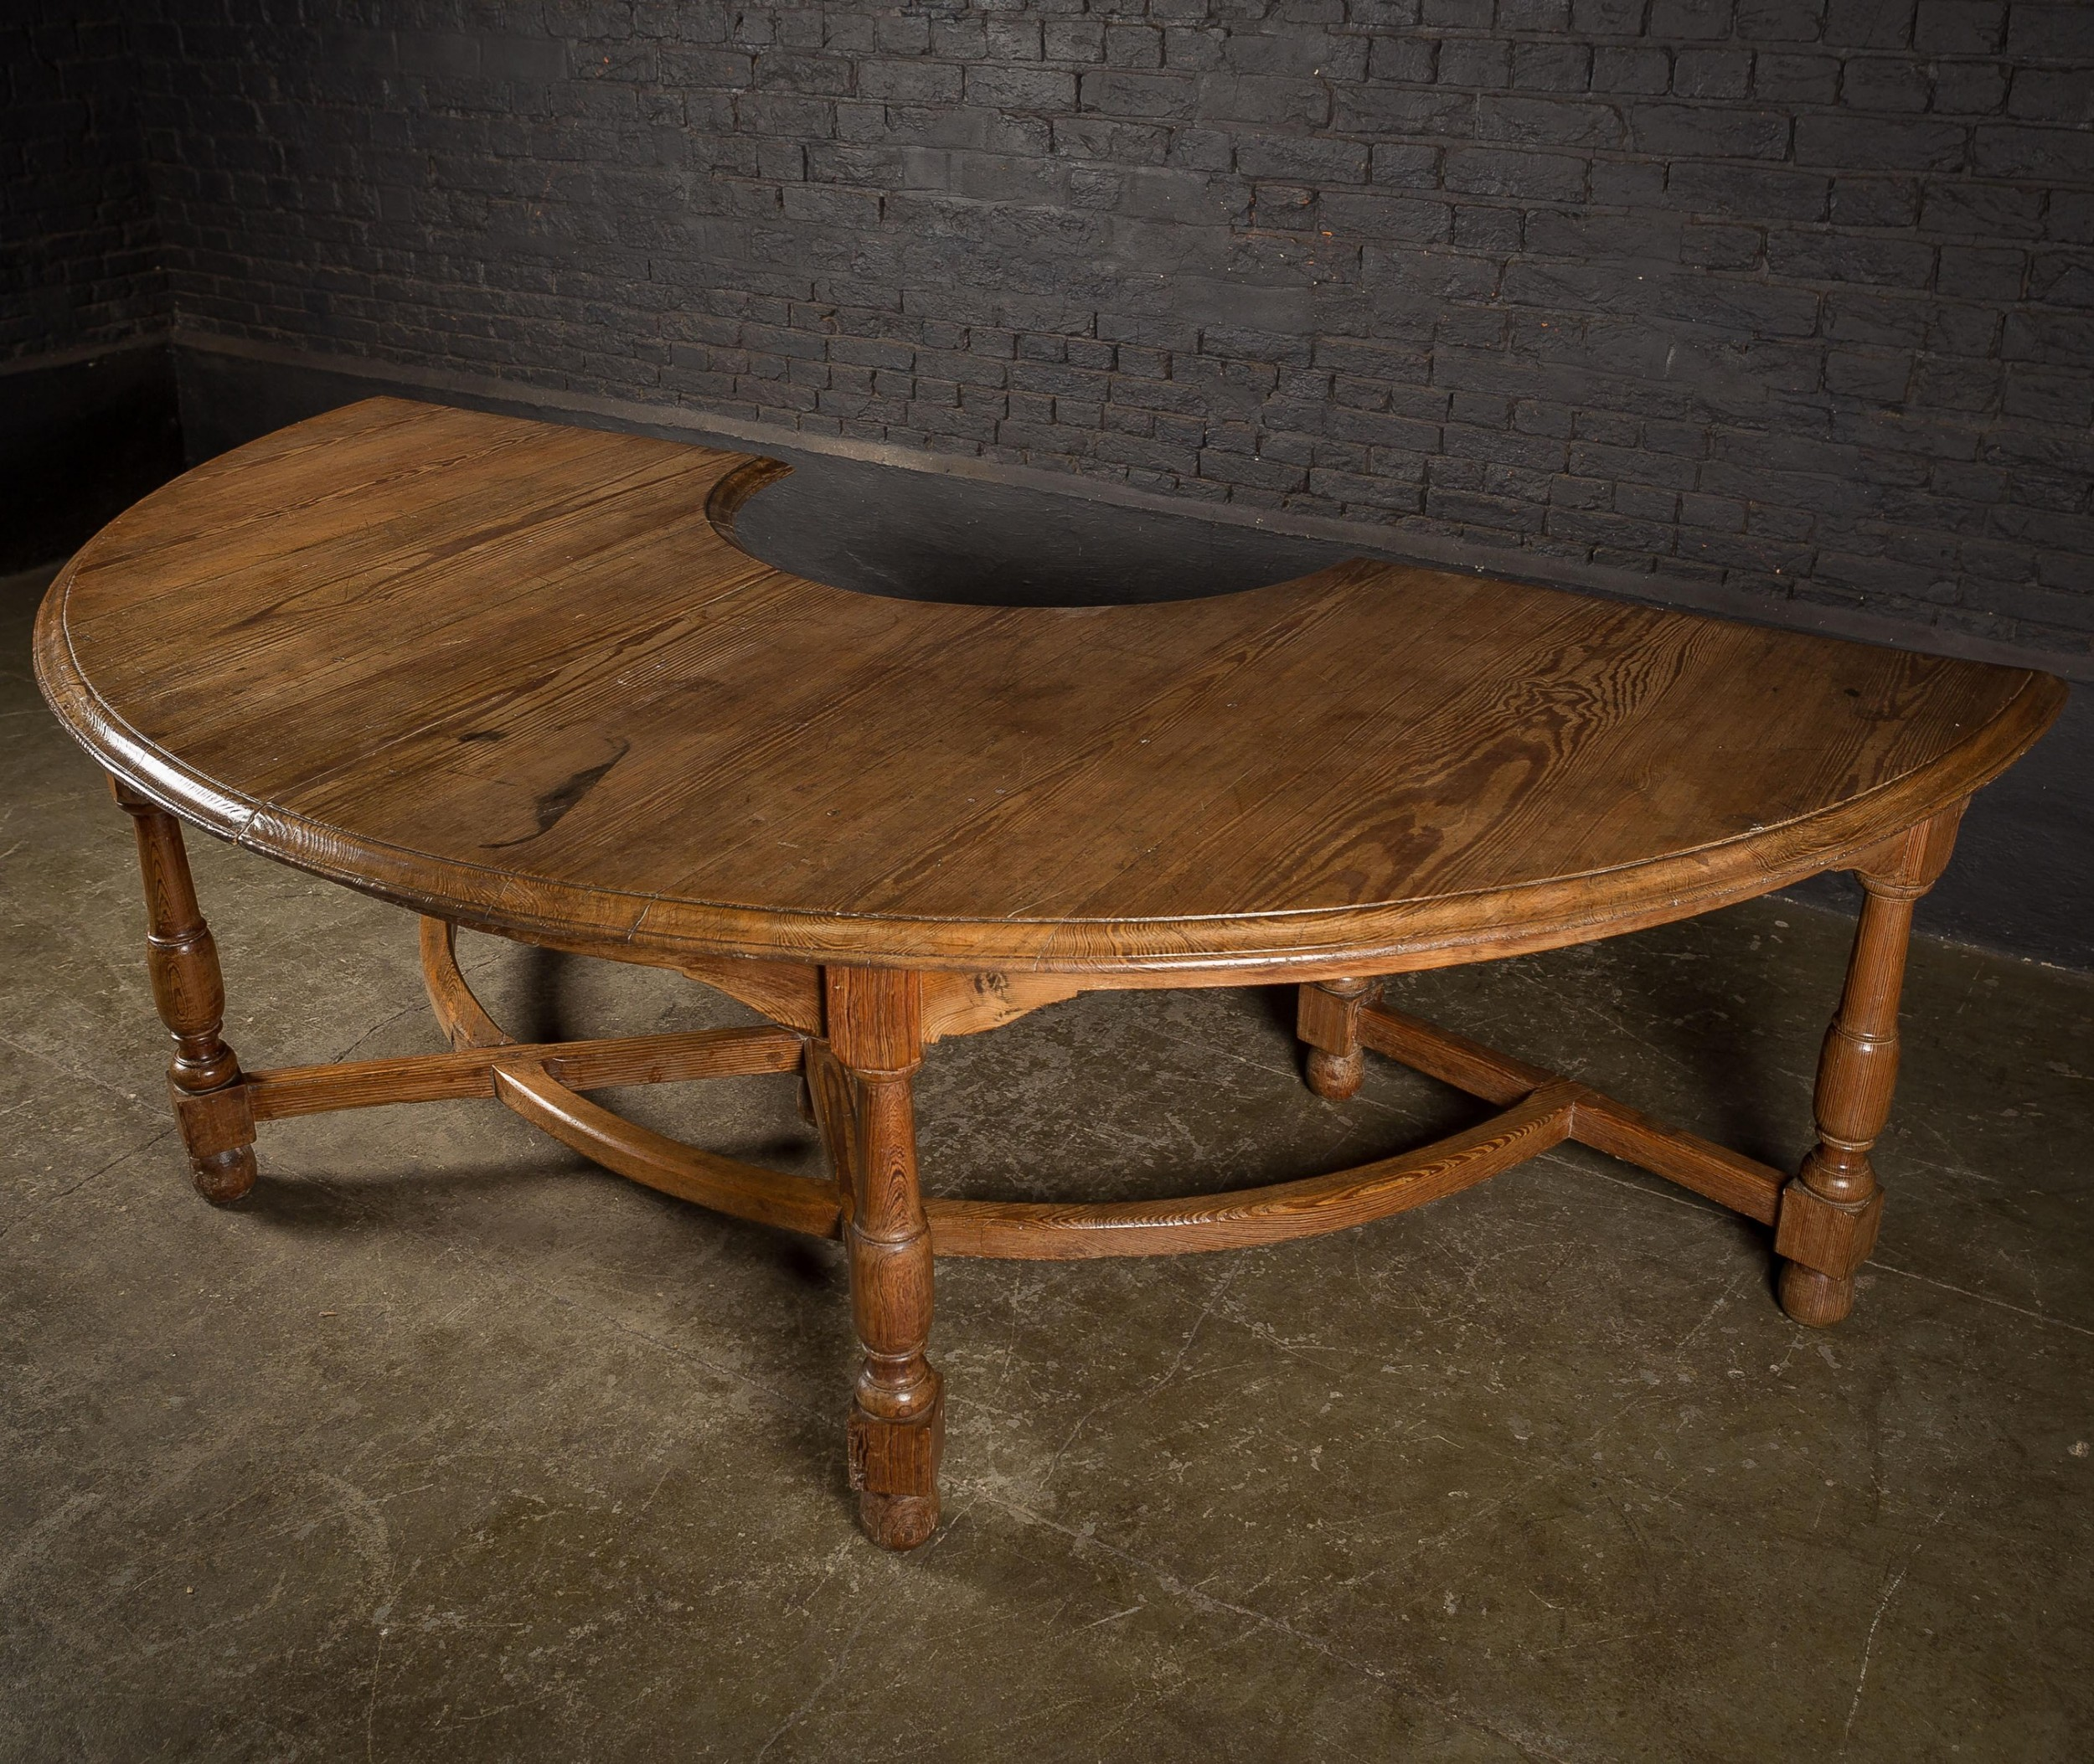 19th c pitch pine dend table with turned legs and curved stretchers